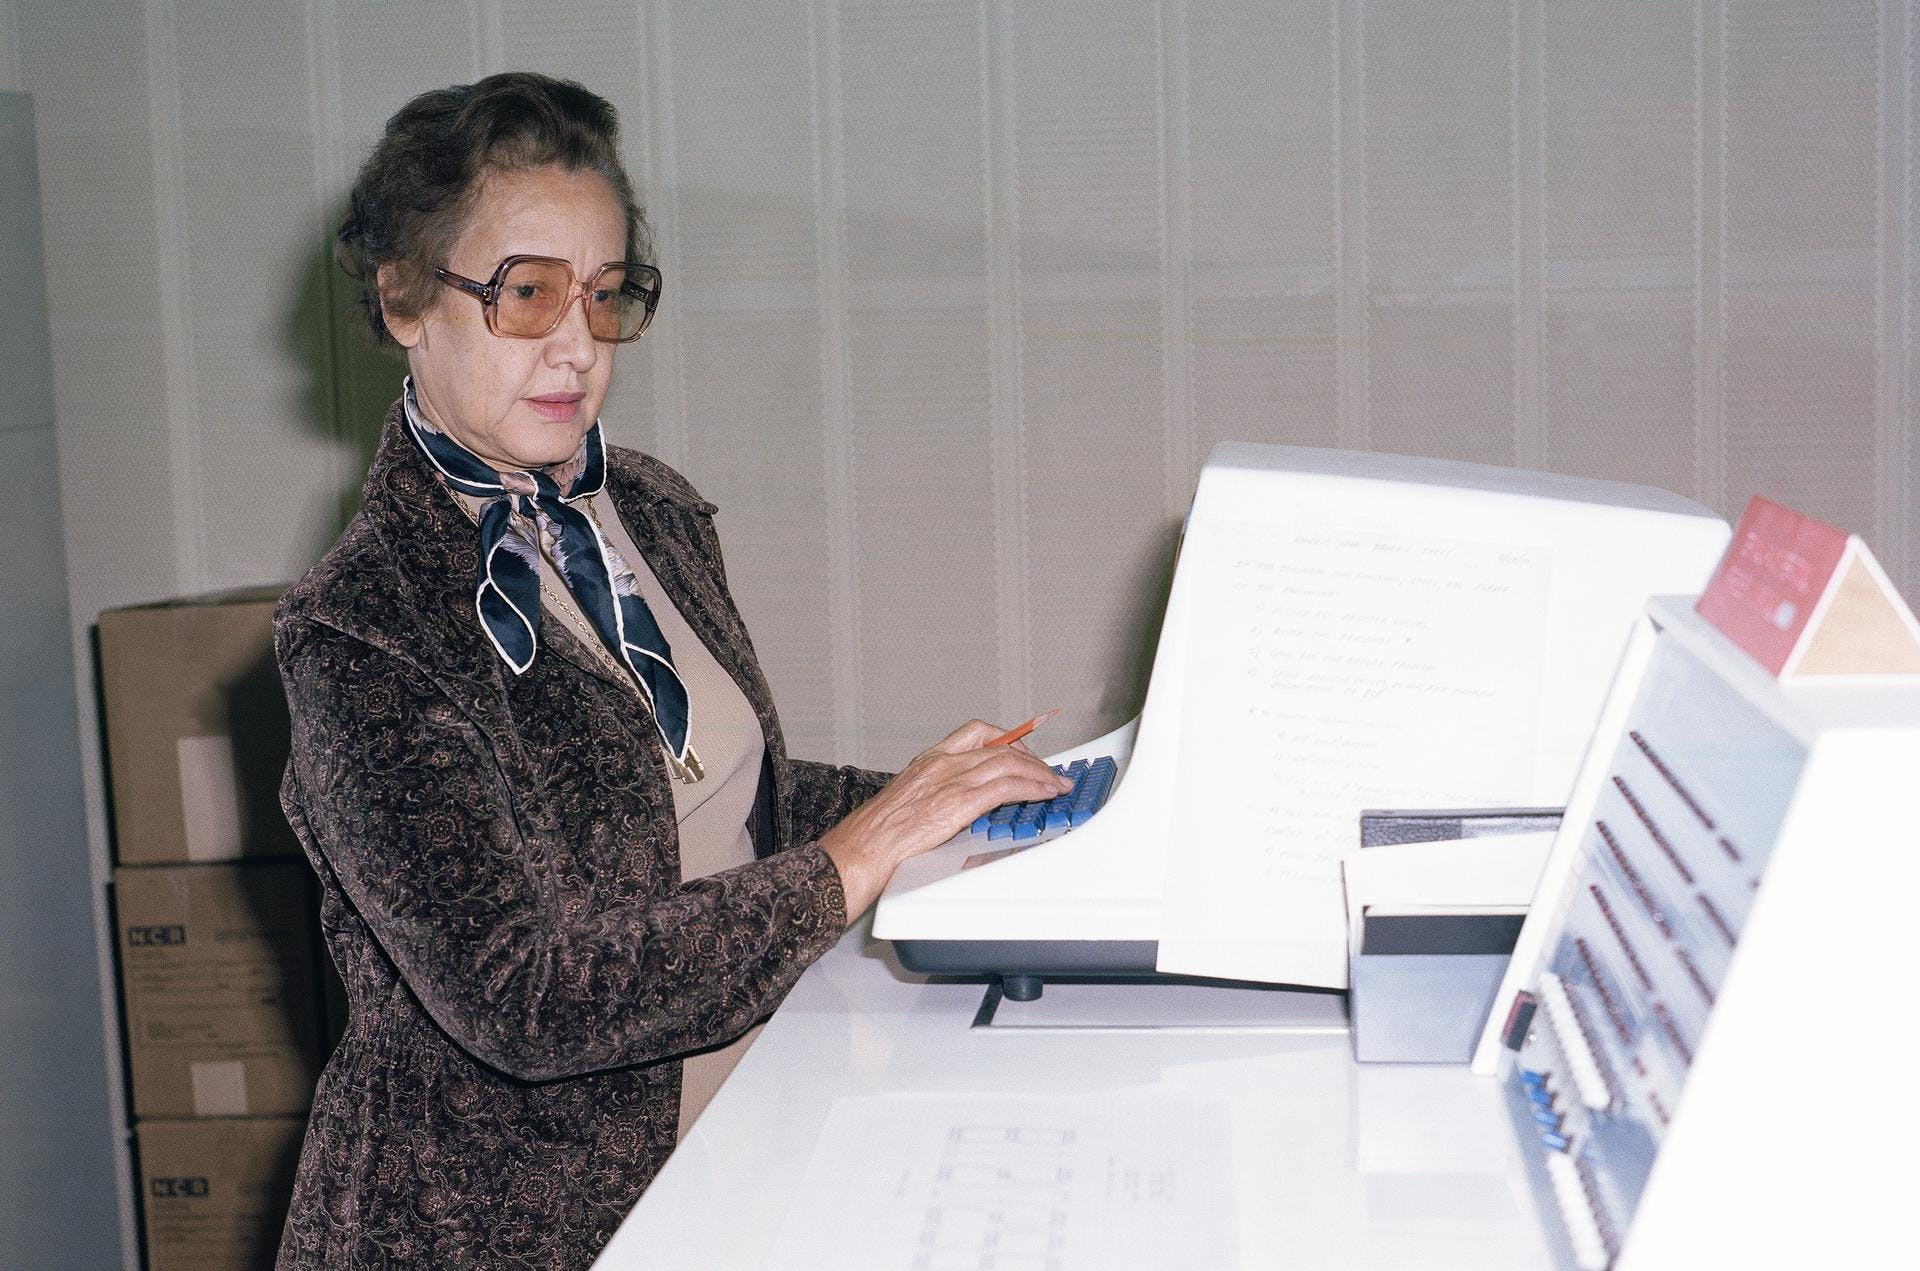 Johnson working at NASA Langley, 1980.